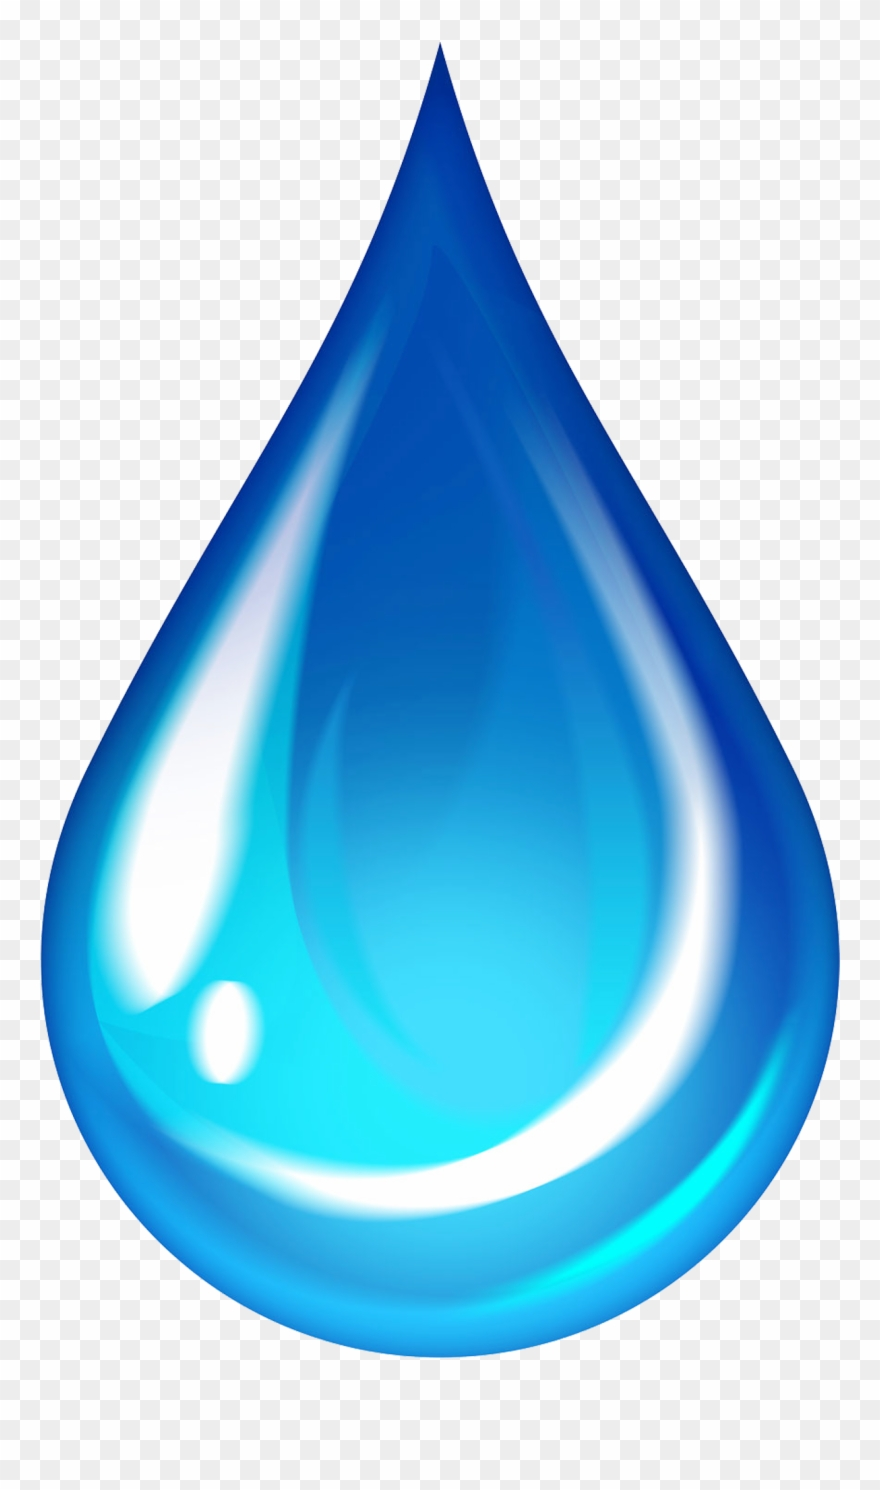 Water Drop Symbol Clipart Best Kmtqp4 Clipart.